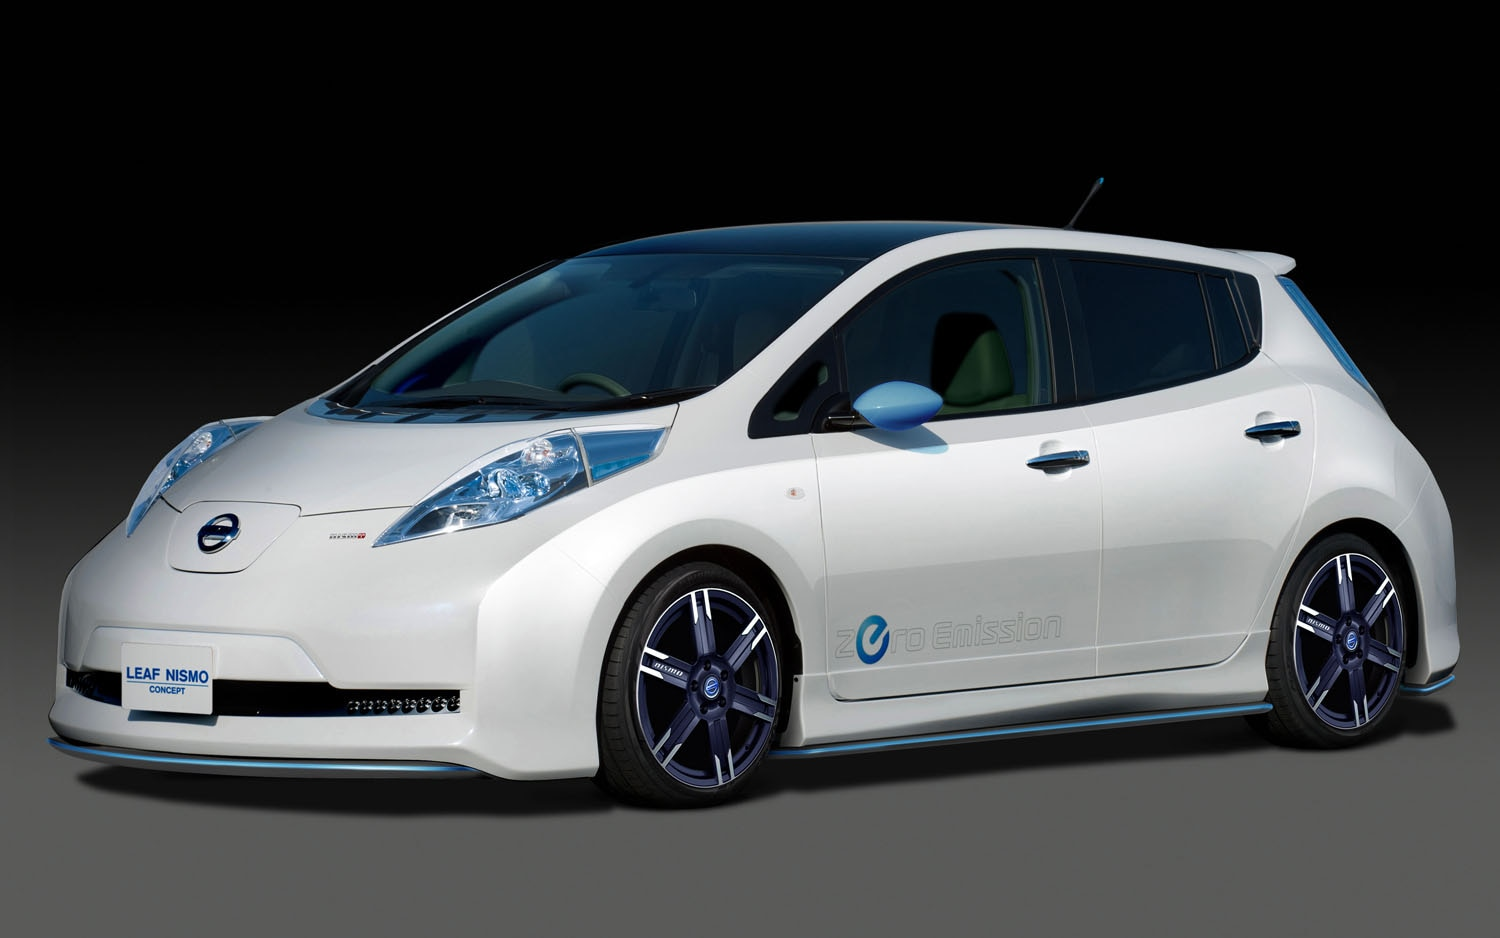 2011 Nissan Leaf Nismo Concept Front Three Quarter1